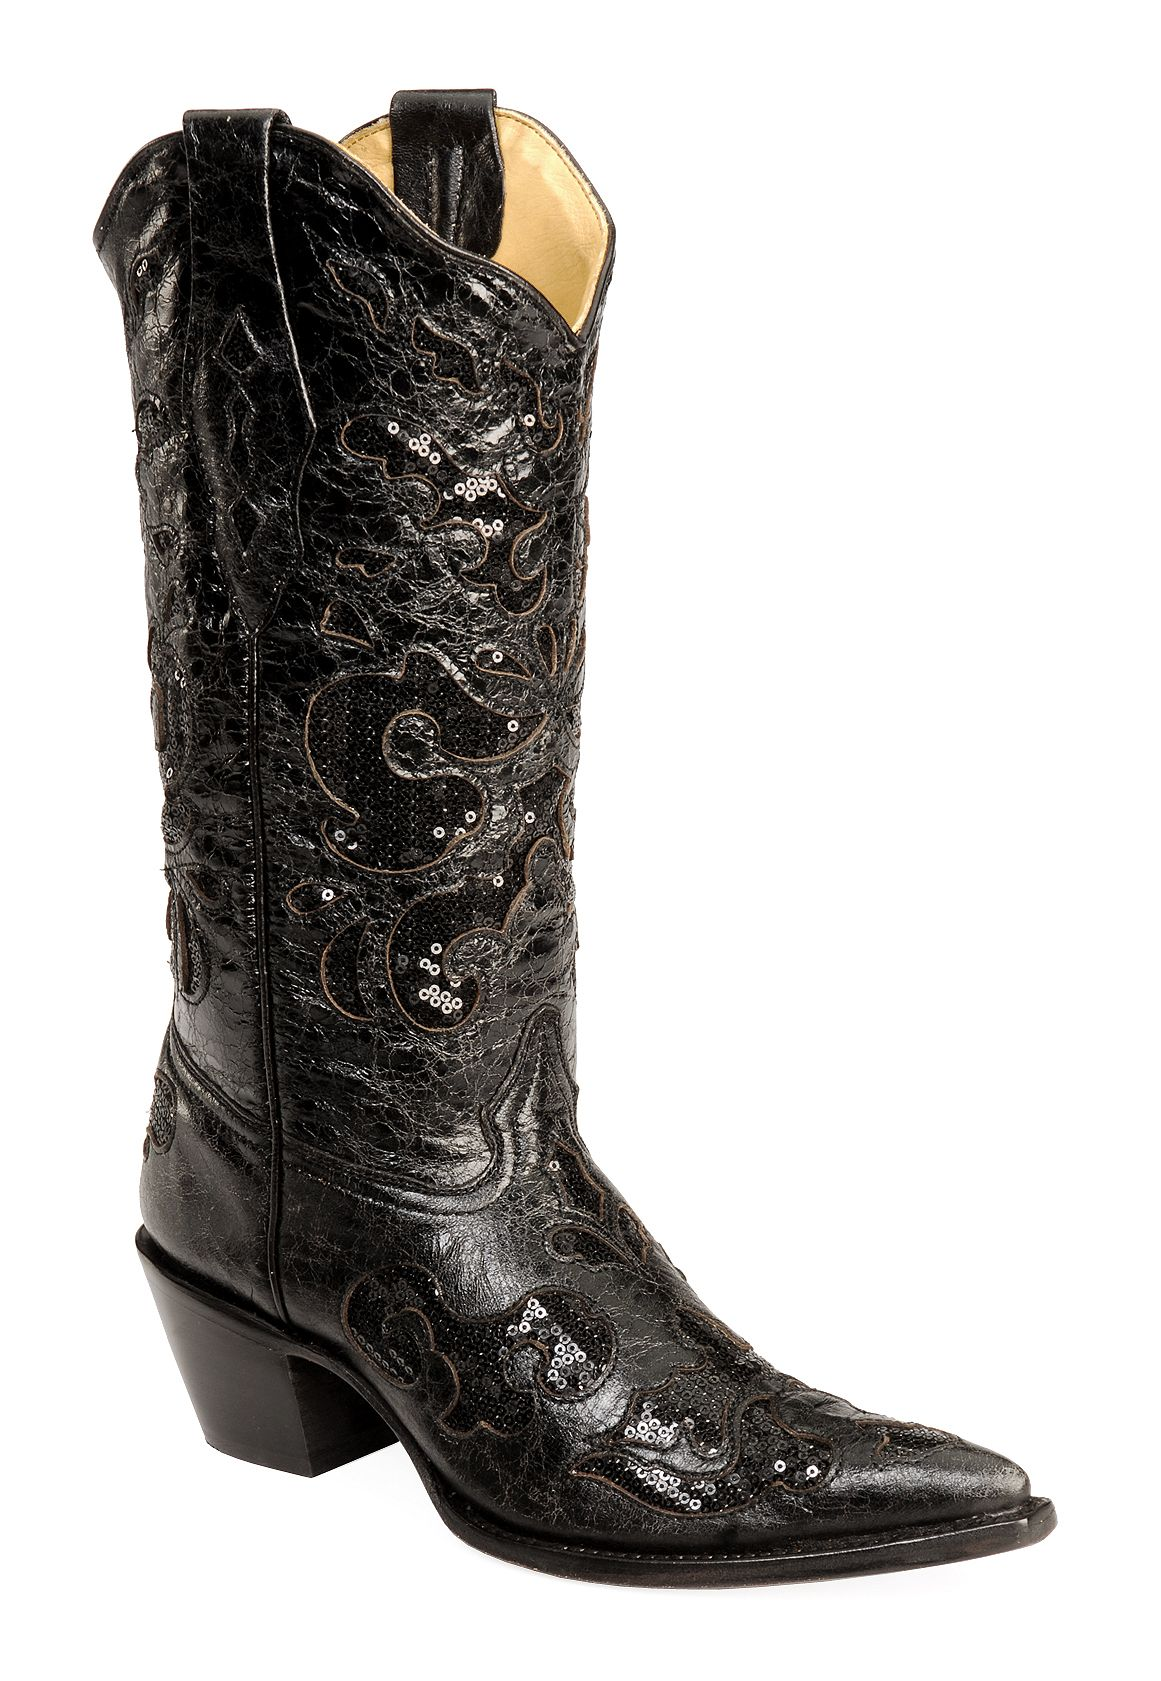 Shop Corral Boots | Free Shipping on Boots | Cavender'sFree Shipping on $50+· Tons of Clearance Items· Email Only Savings· Great Customer Service10,+ followers on Twitter.